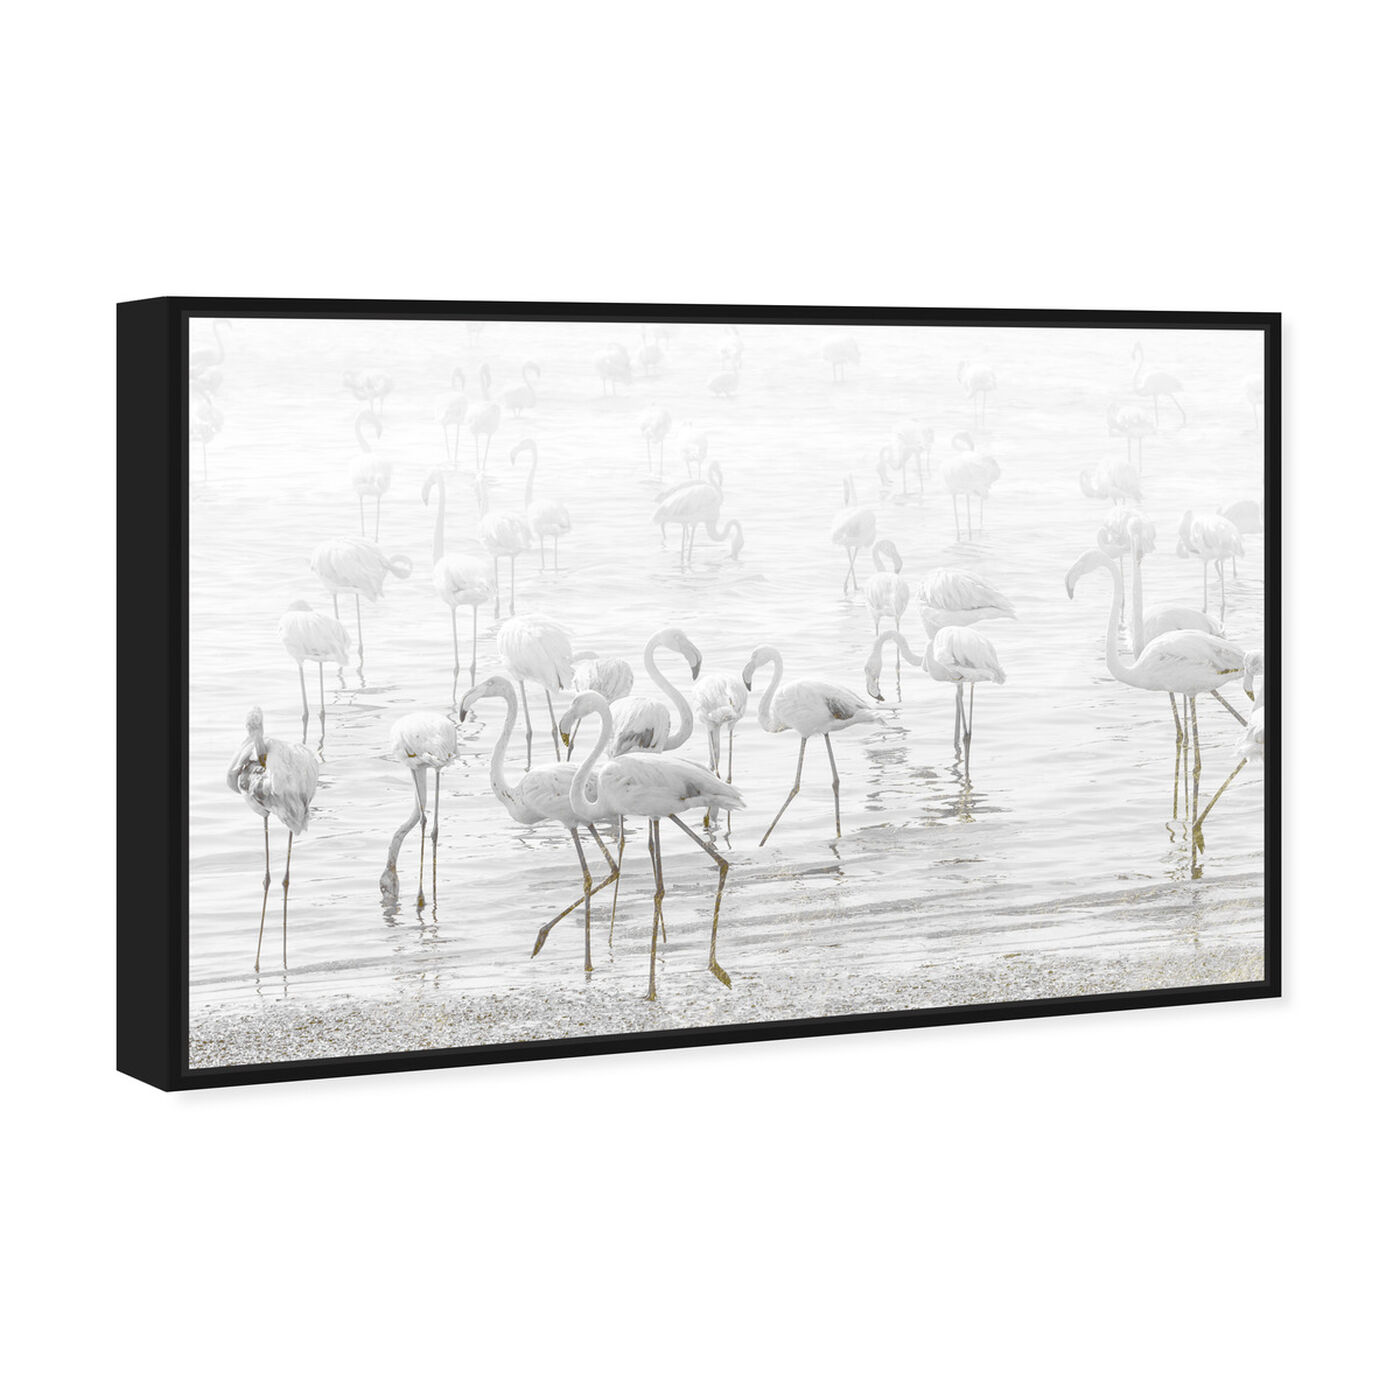 Angled view of White Feather Flamingos featuring animals and birds art.